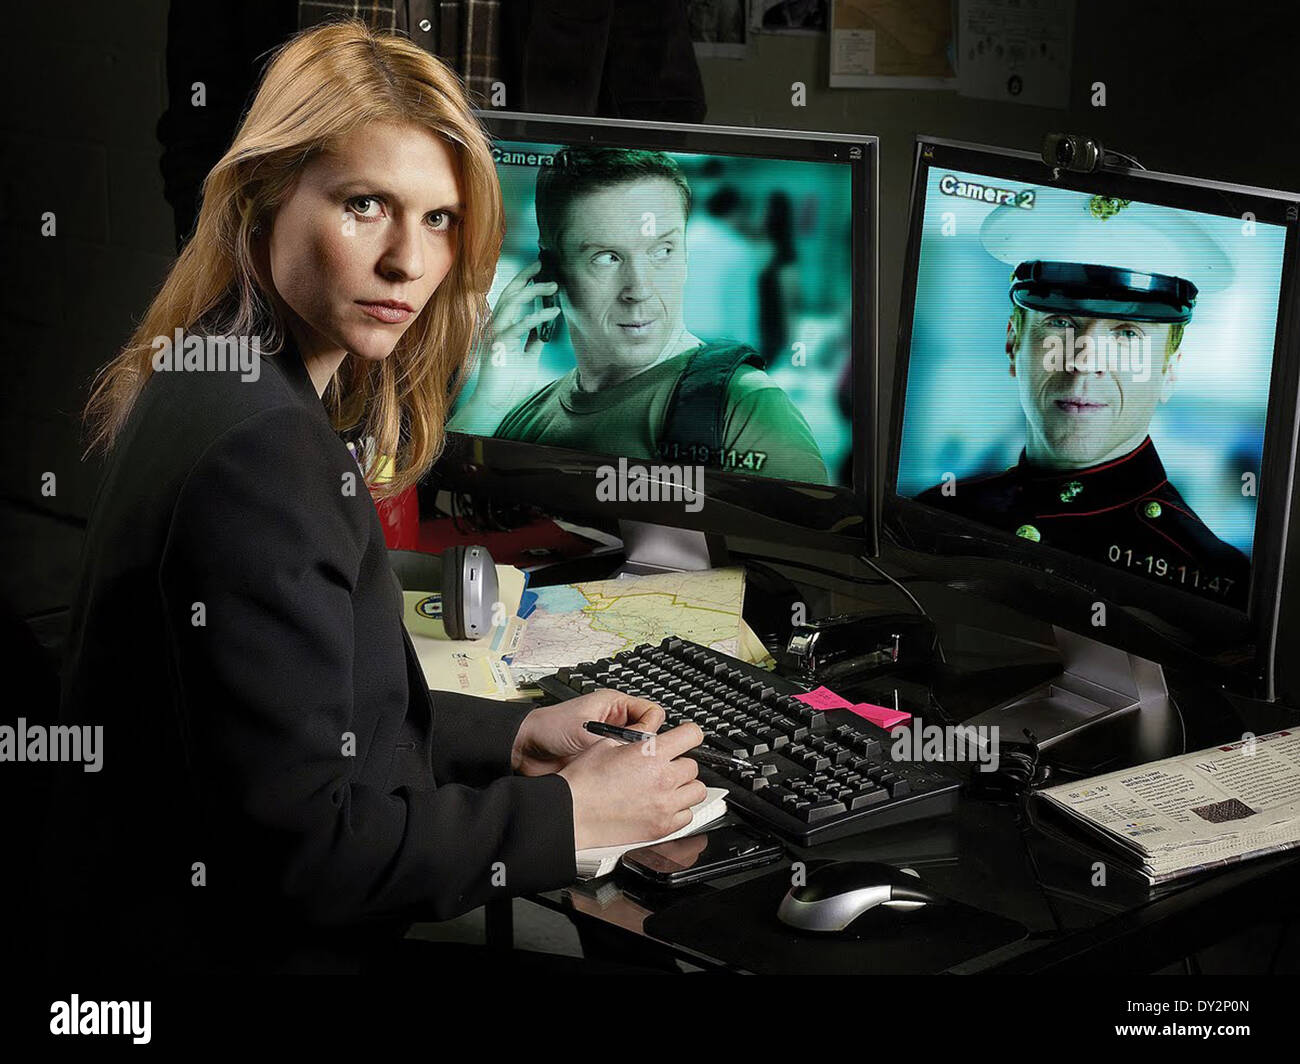 HOMELAND (TV) (2011) CLAIRE DANES, DAMIAN LEWIS MOVIESTORE COLLECTION LTD - Stock Image